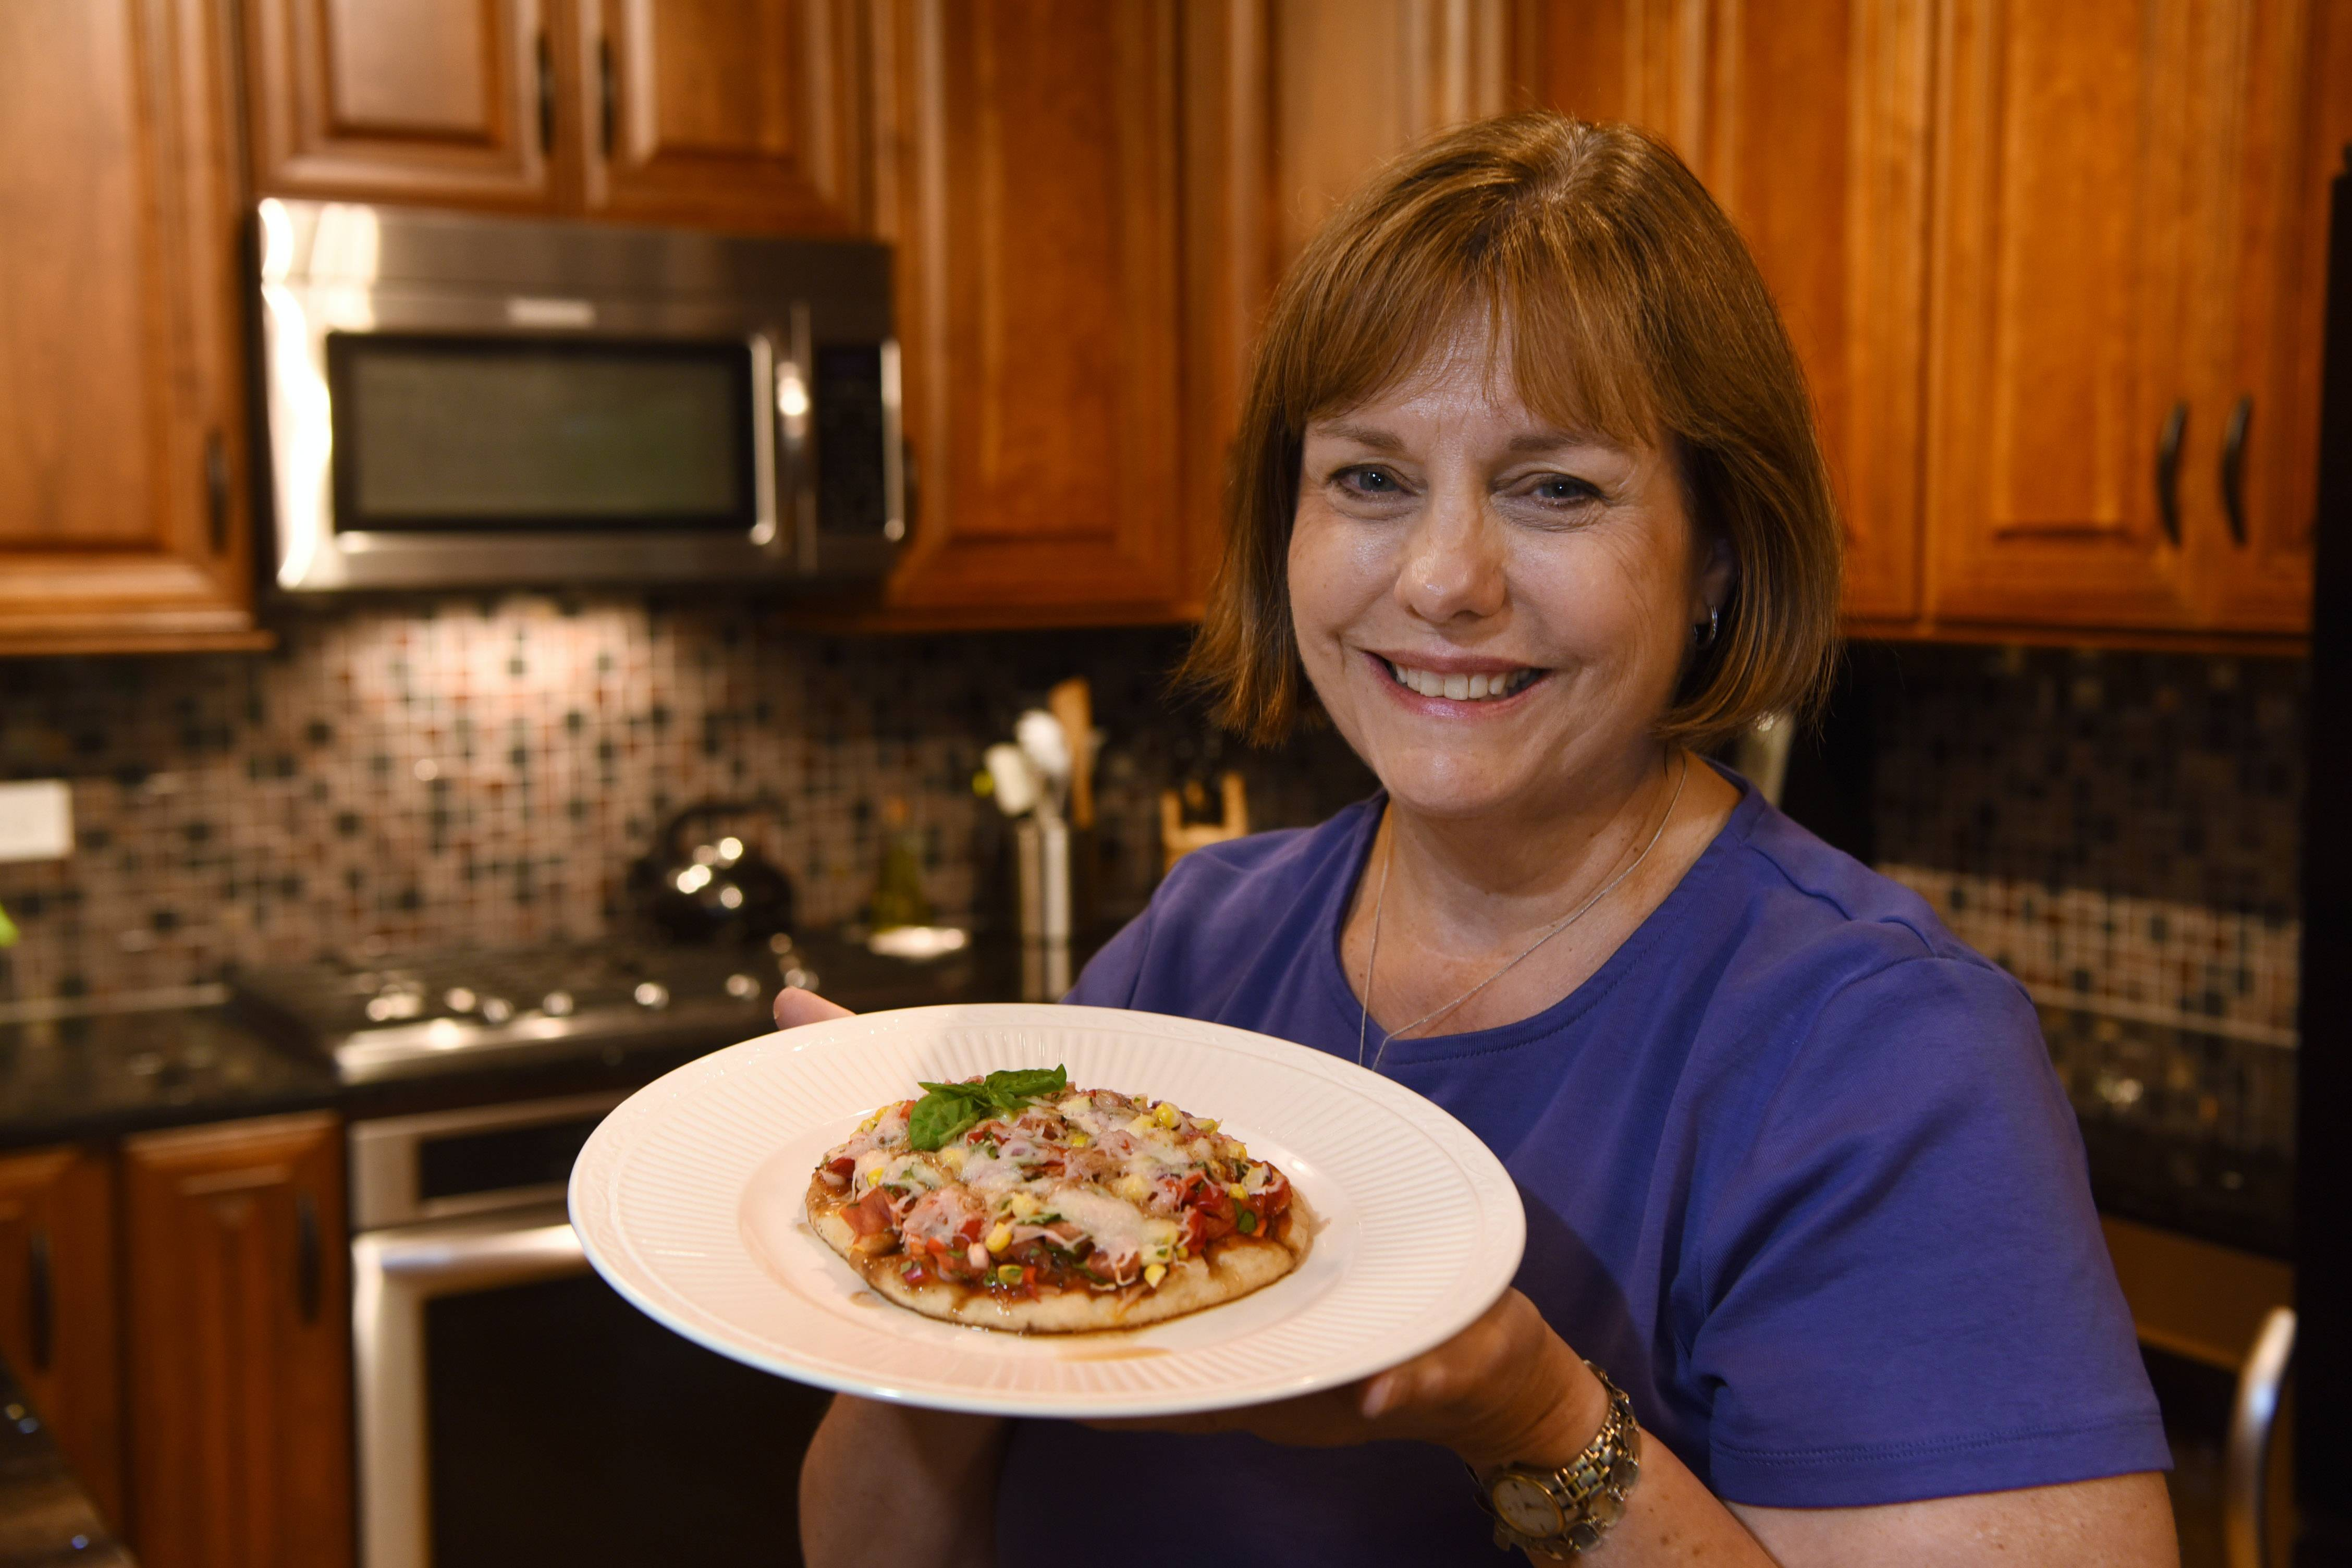 Cook of the Week Barbara Hartwig of Deerfield cooks often with fresh vegetables in such dishes as her homemade veggie frittata and pizza.